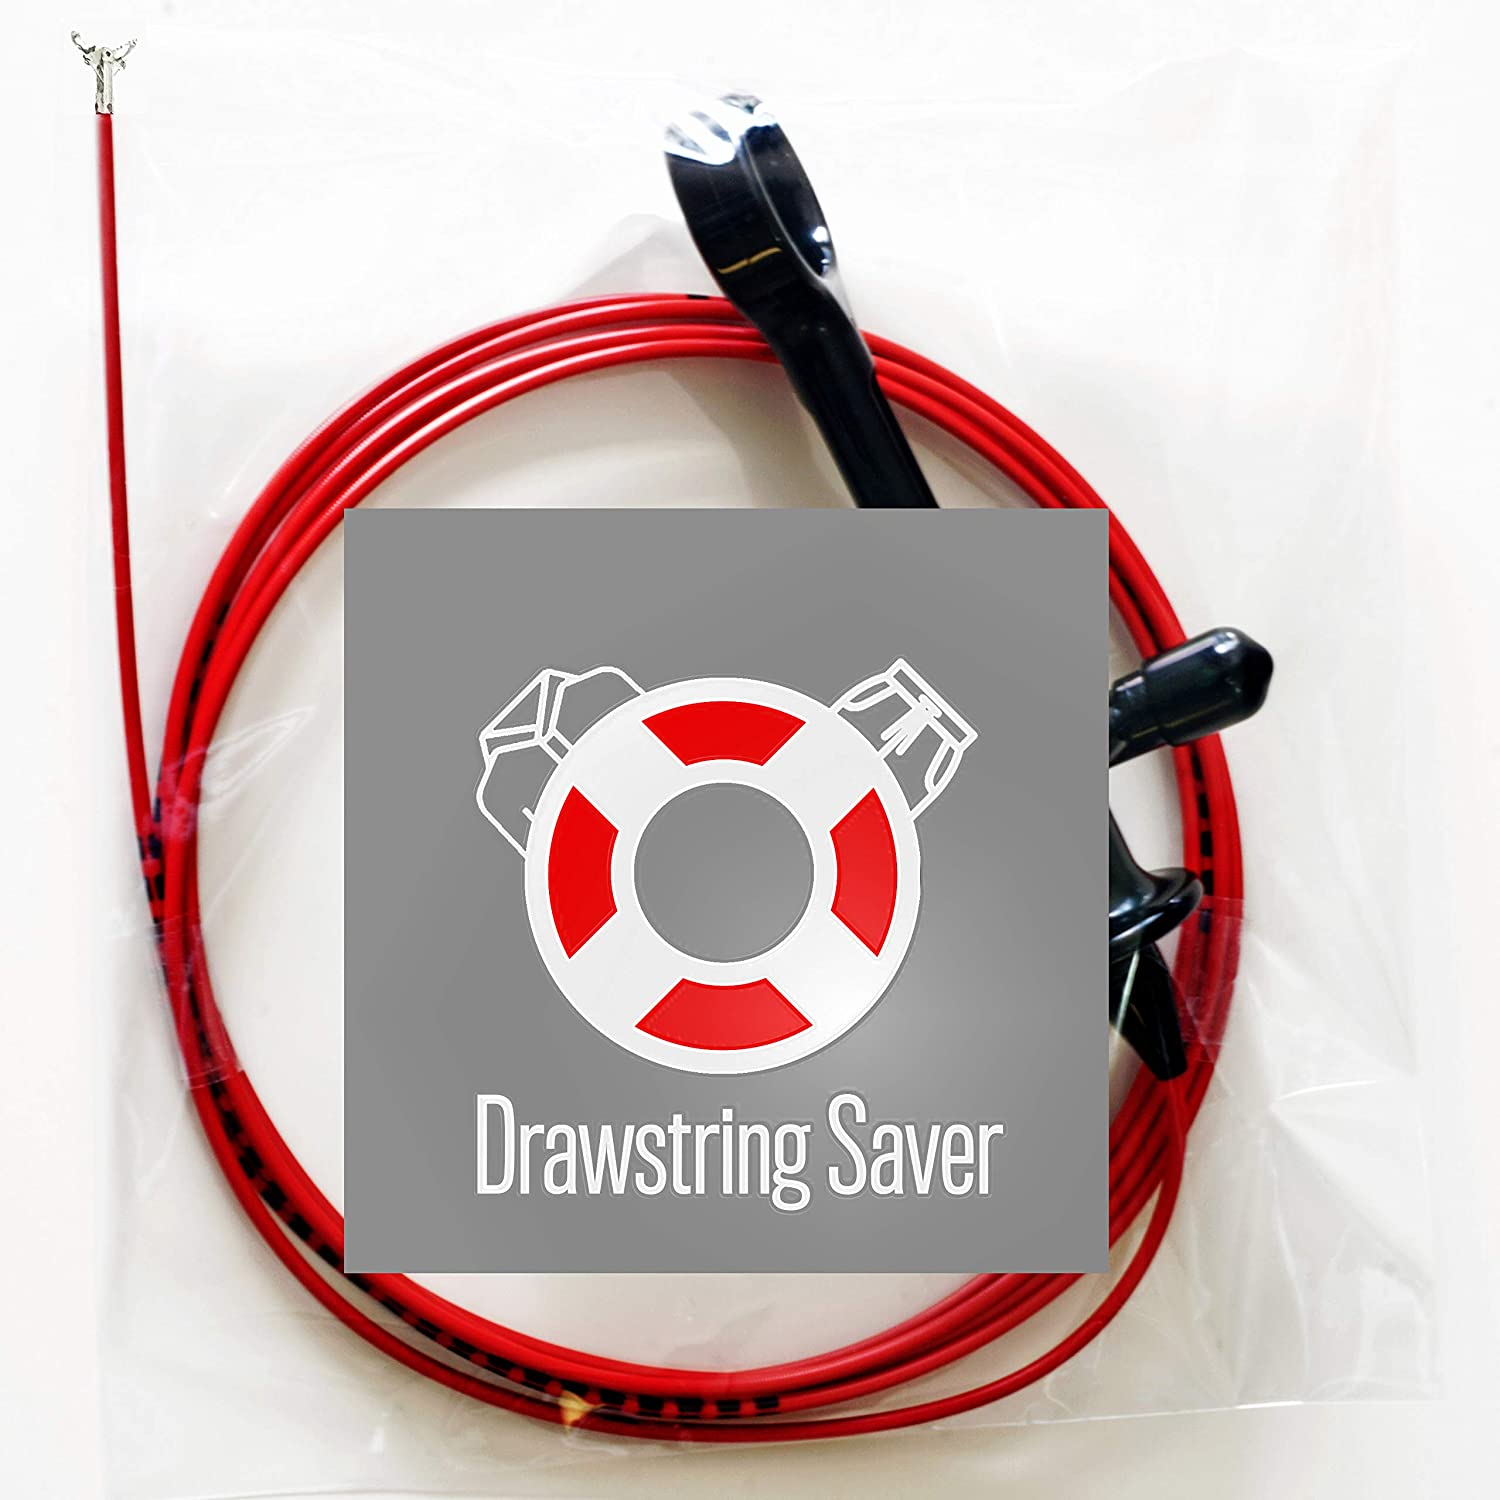 Drawstring Saver Threader & Rethreader